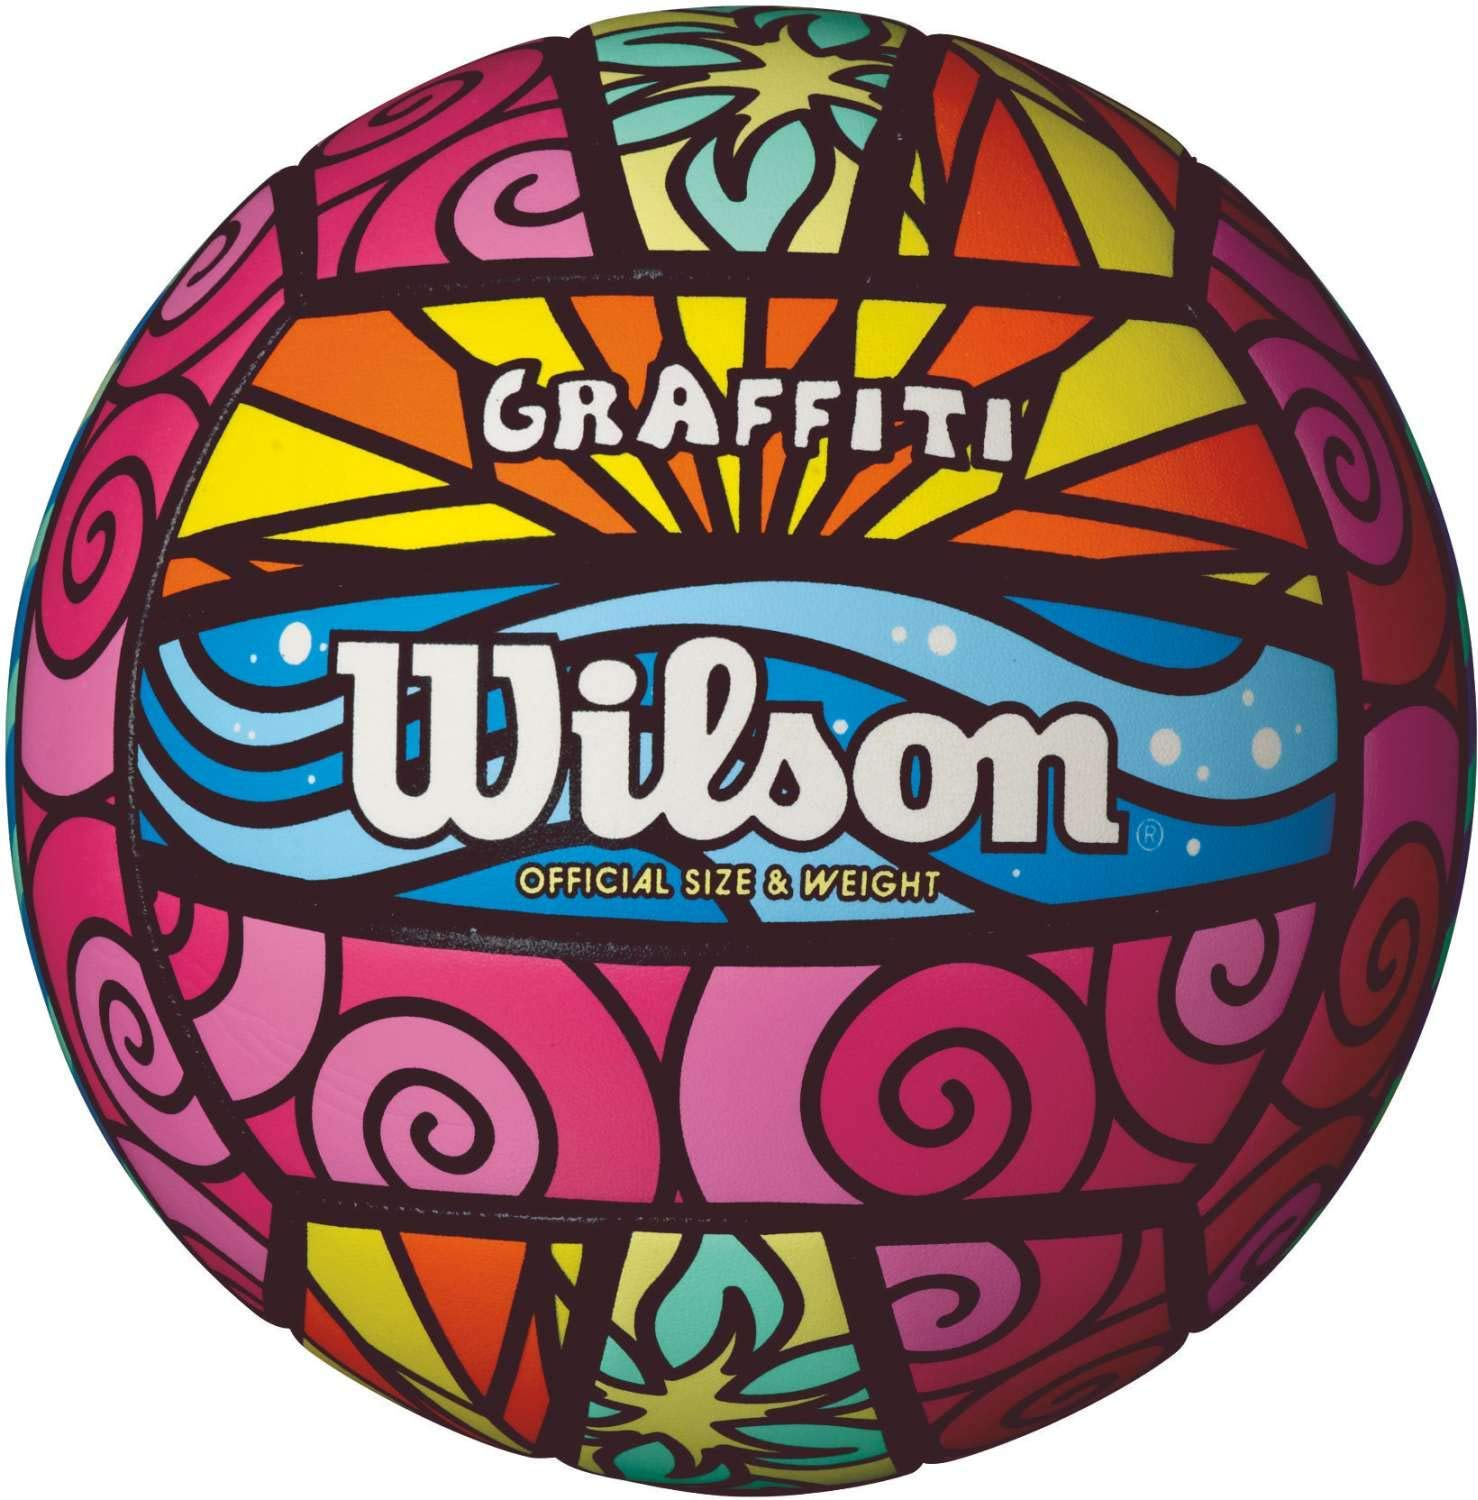 Wilson Graffiti Volleyball (Renewed): Amazon.es: Deportes y aire libre